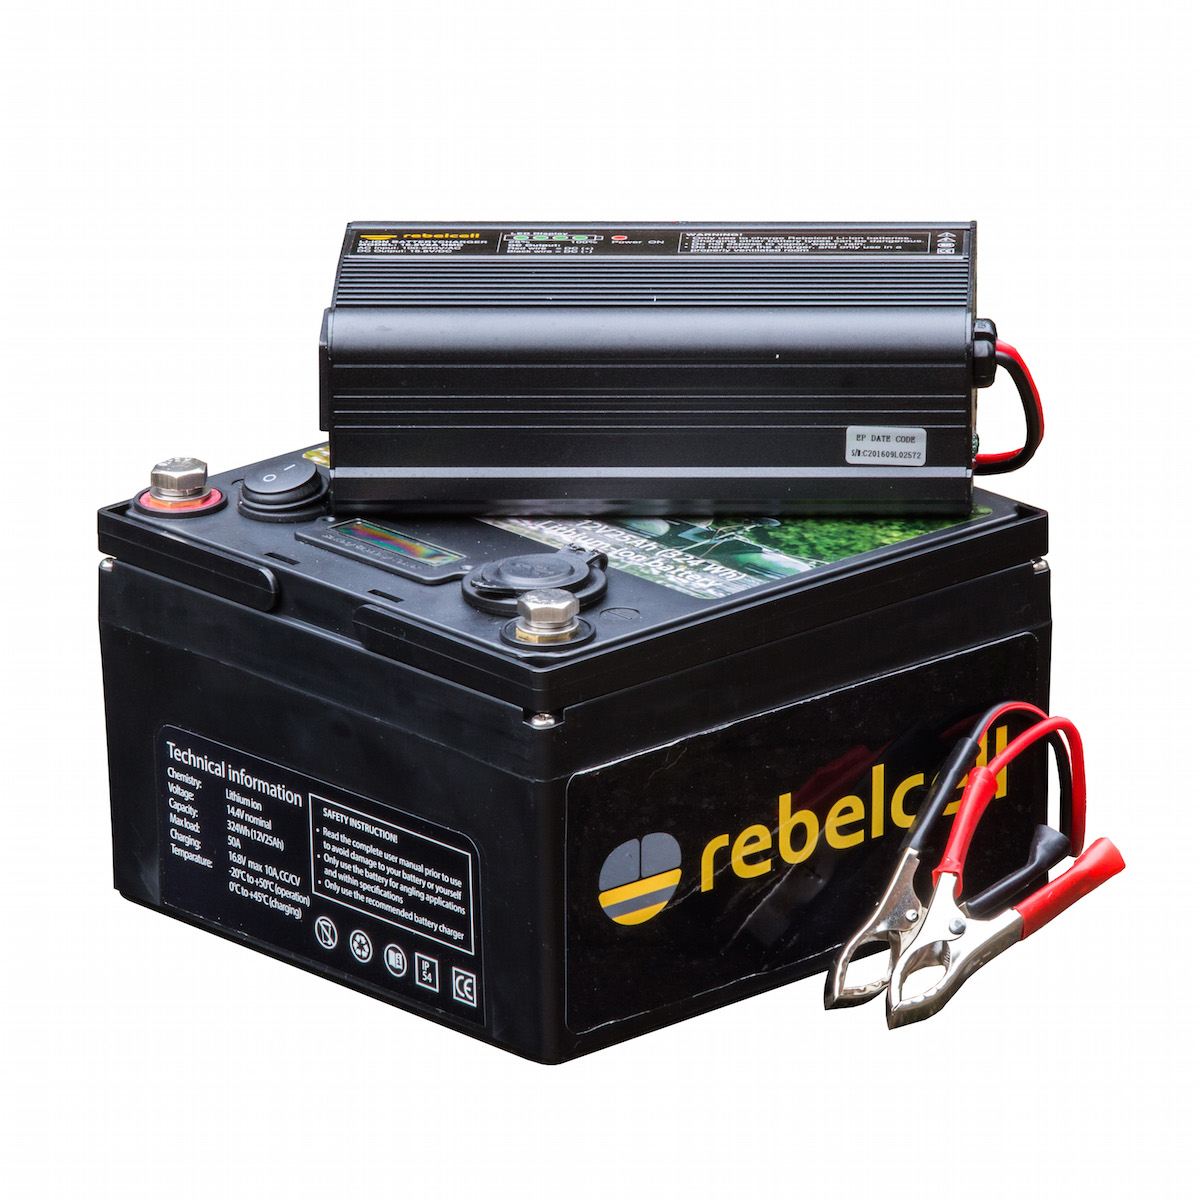 Rebelcell Ultimate 12V25 Inkl. Lader